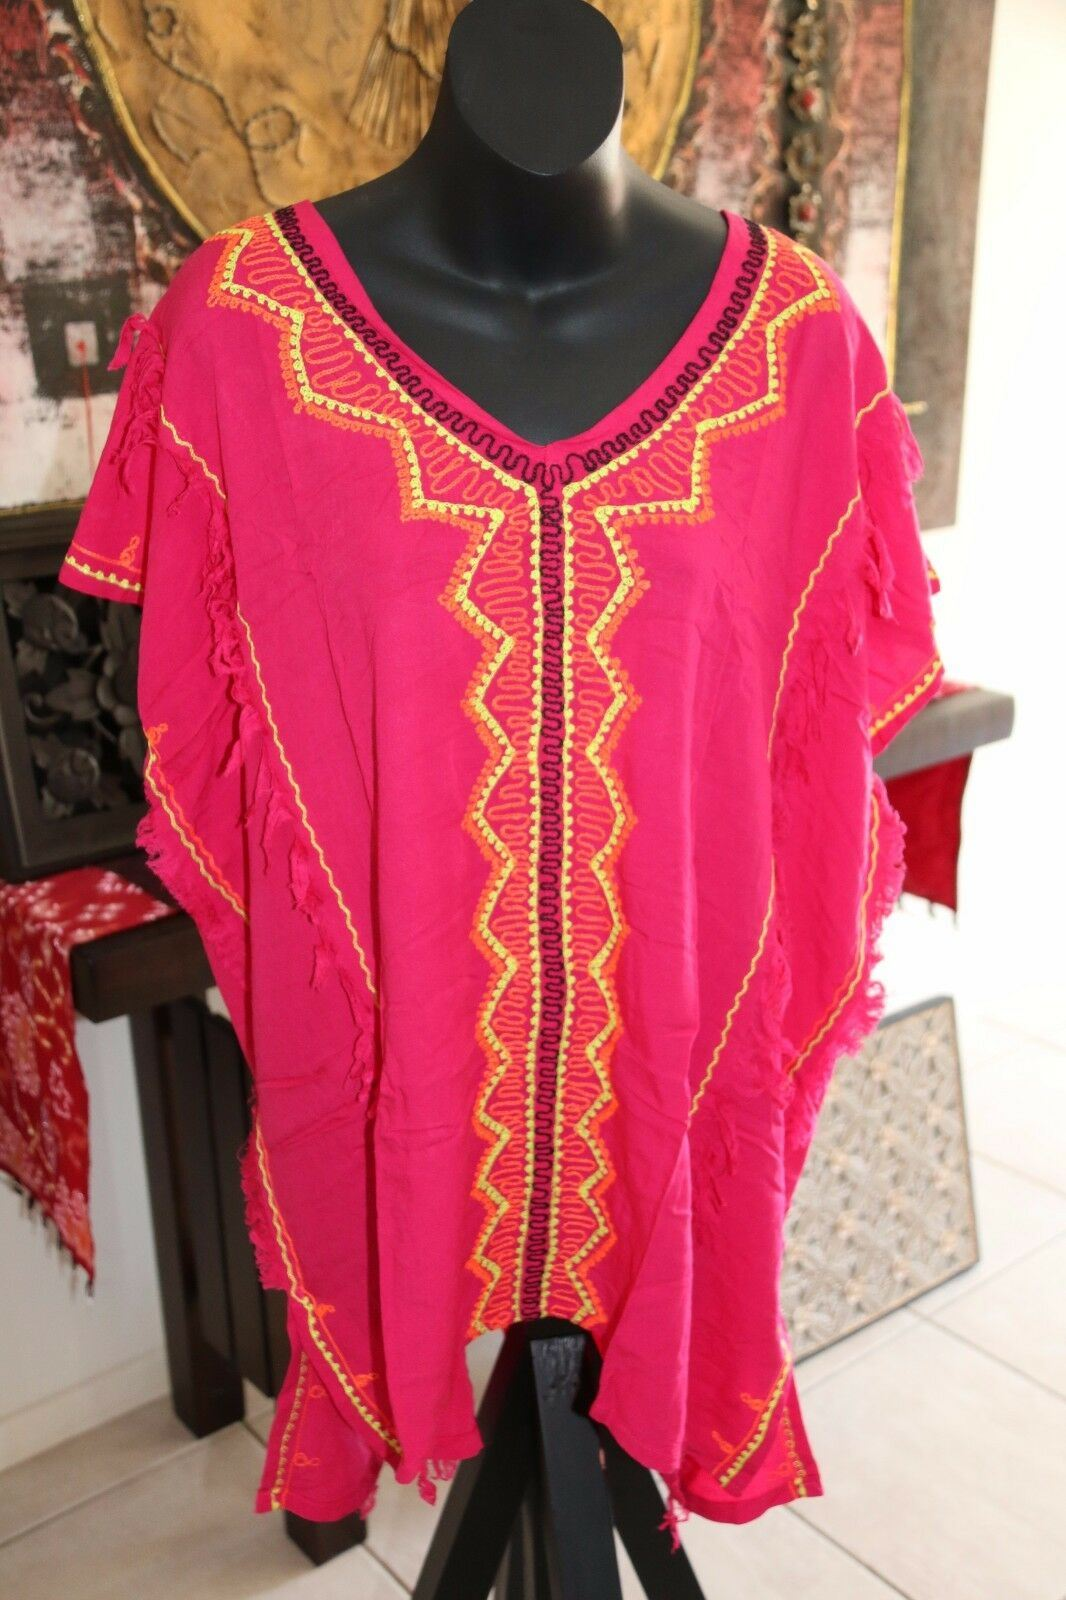 Balinese Kaftan Top - Beachwear / Casualwear - MANY COLOURS AVAIL - One Size